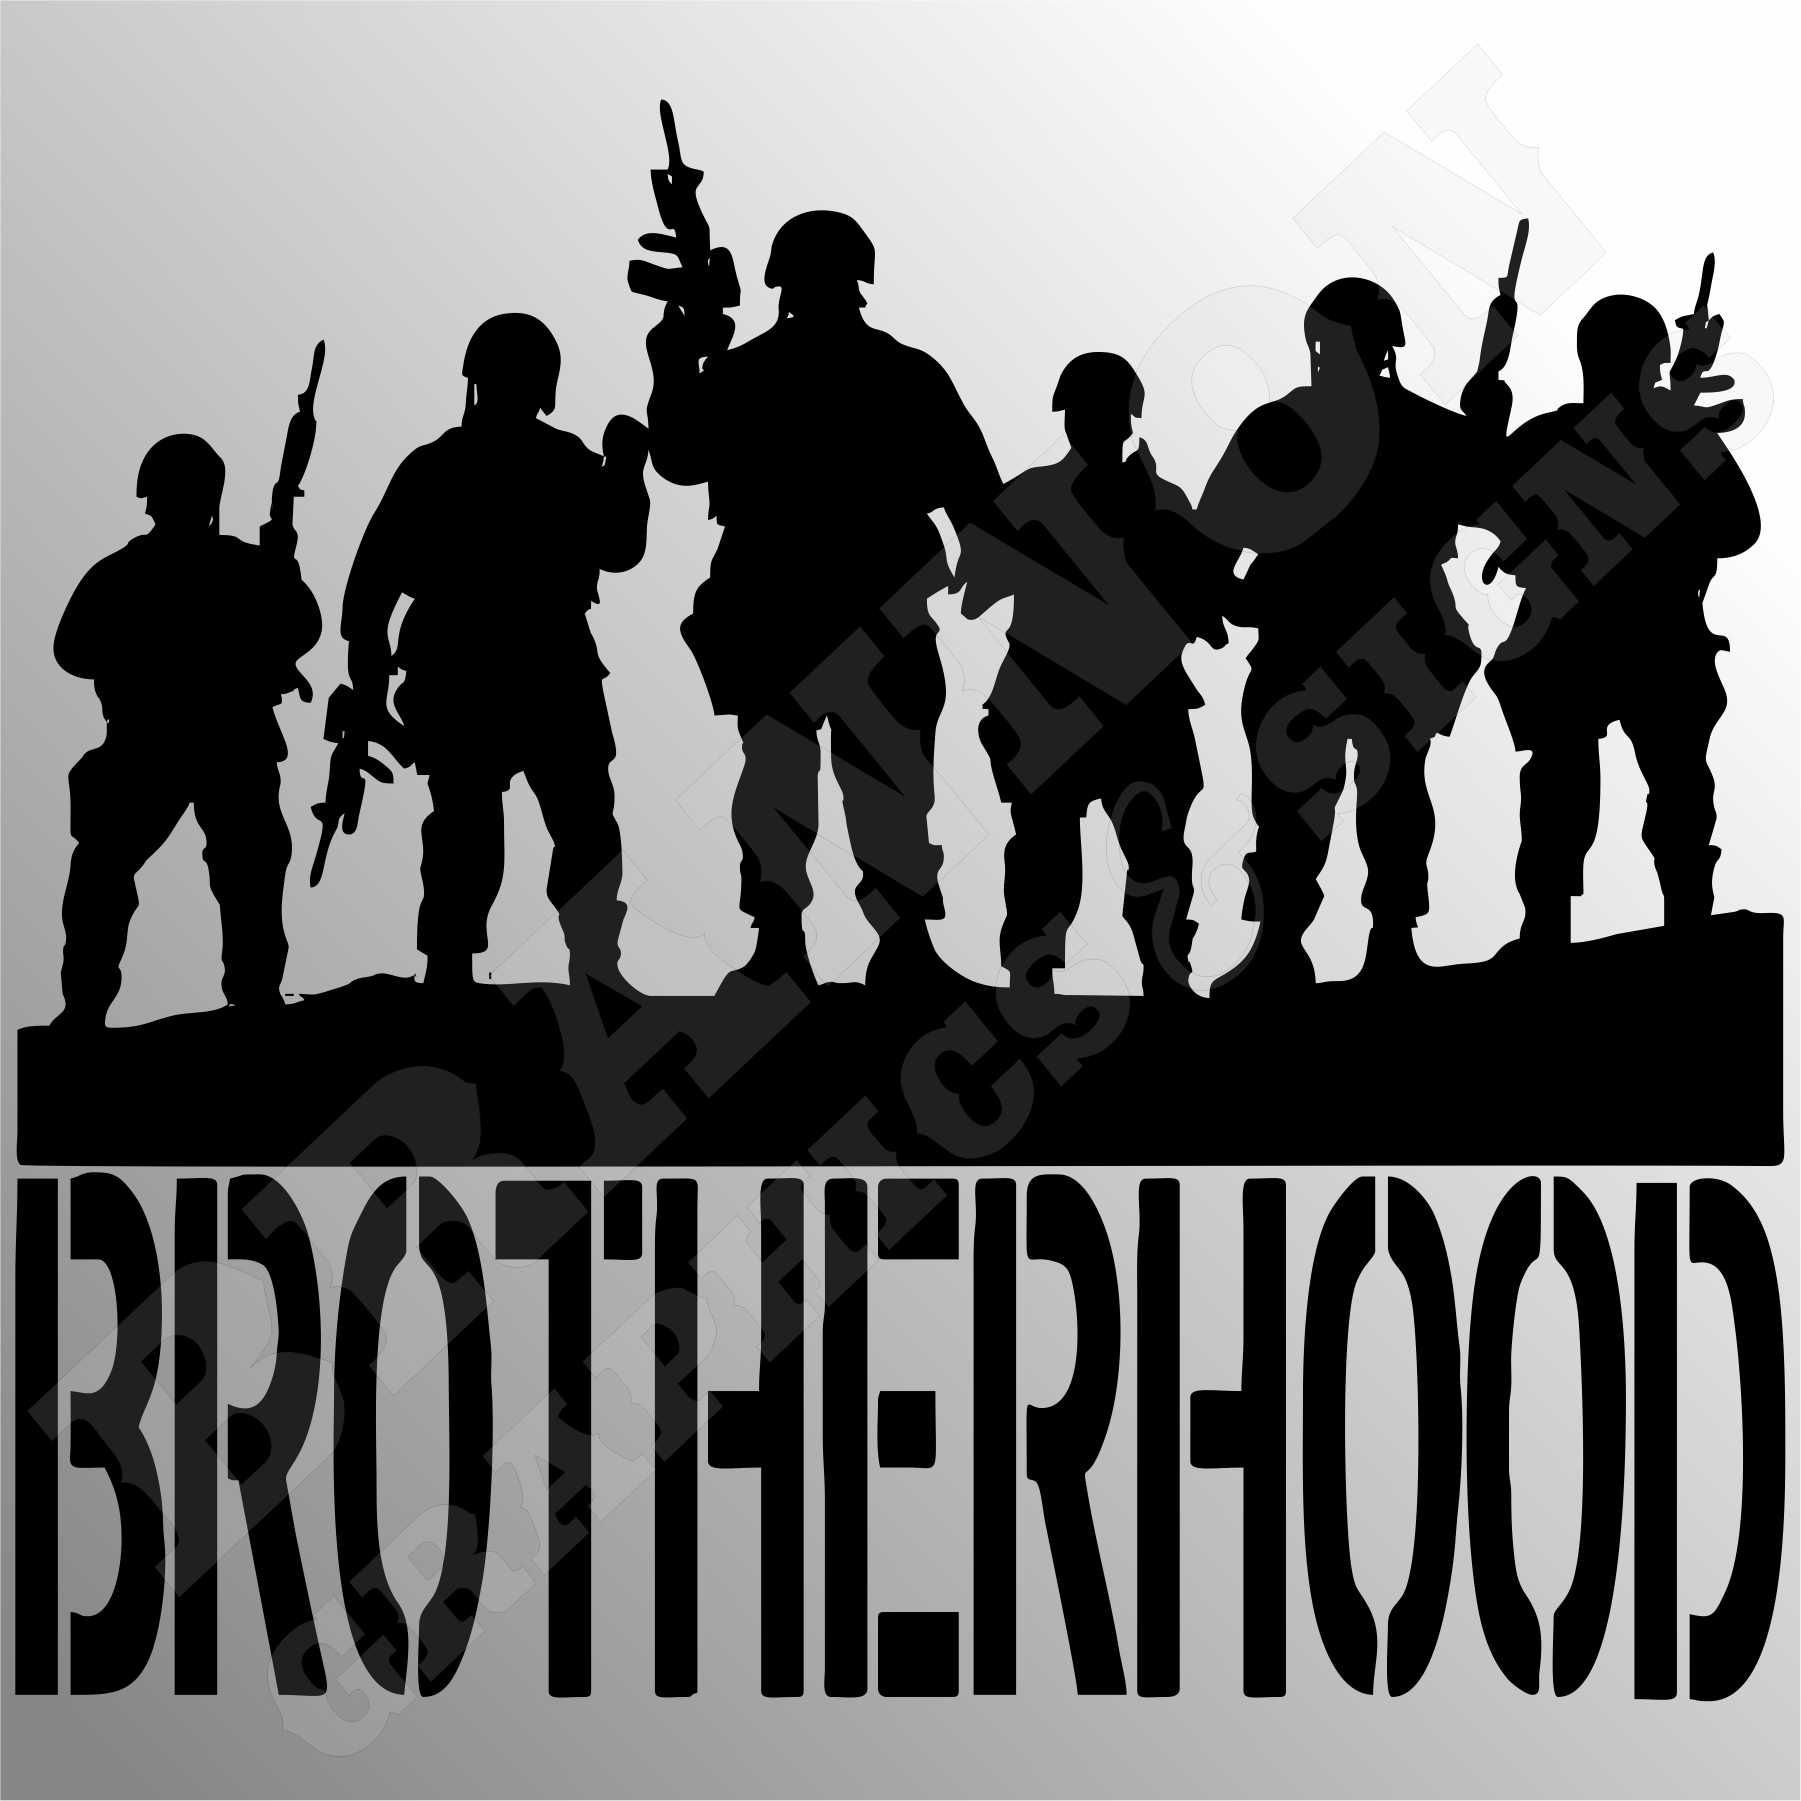 Brotherhood Military Themed Design That Can Be Made Into Decals Signs Or T Shirts Fully Customizable Imagenes Militares Cumpleanos De Camuflaje Siluetas [ 1801 x 1801 Pixel ]